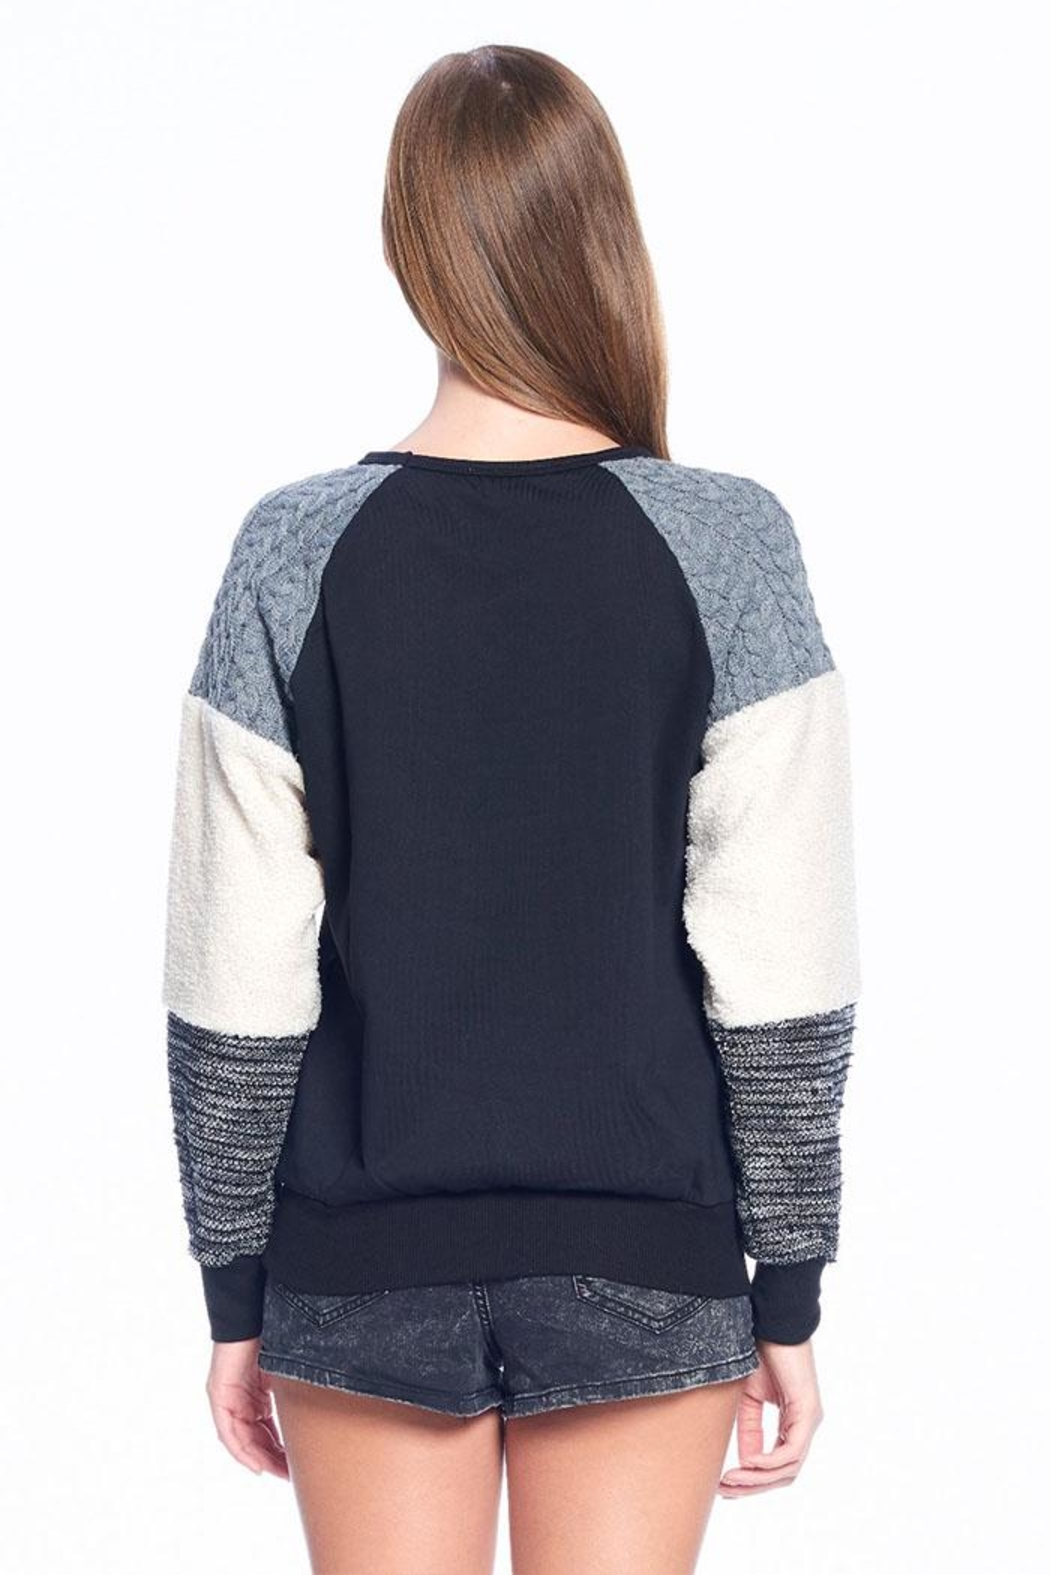 ACOA Soft Colorblock Sweater - Side Cropped Image